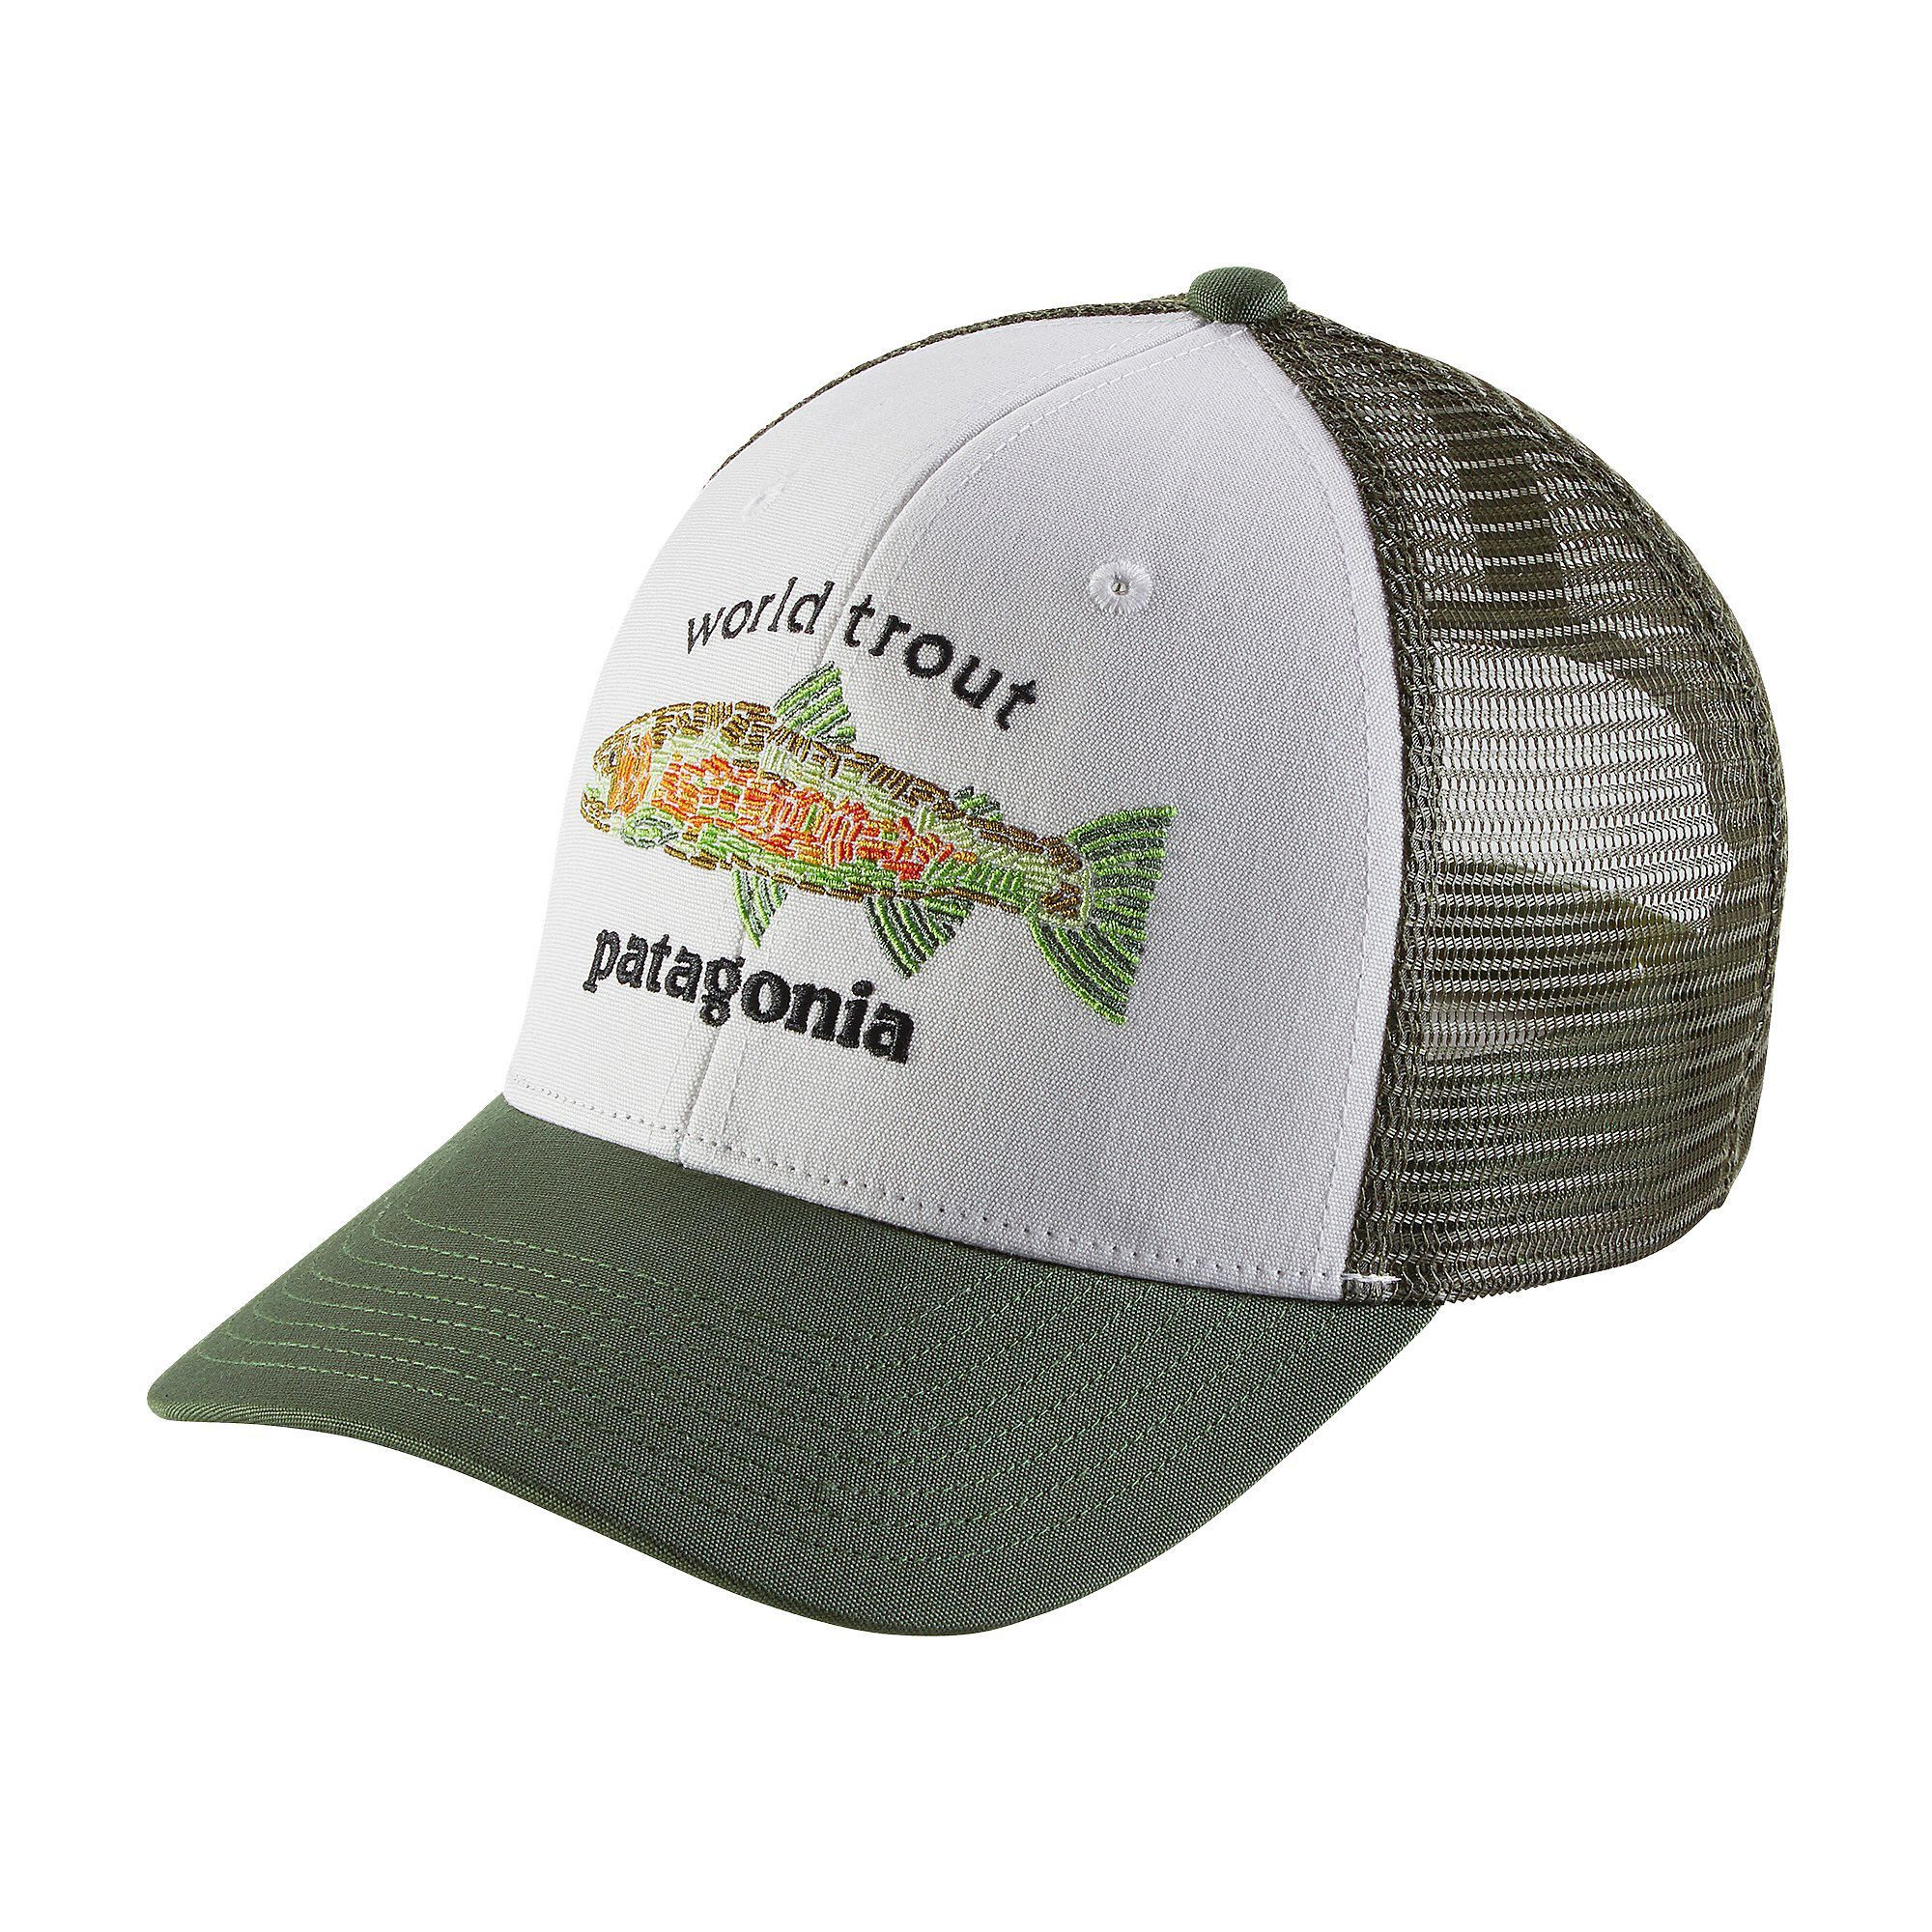 cb59d172 Patagonia World Trout Fishstitch Trucker Hat - White | truckers hats ...